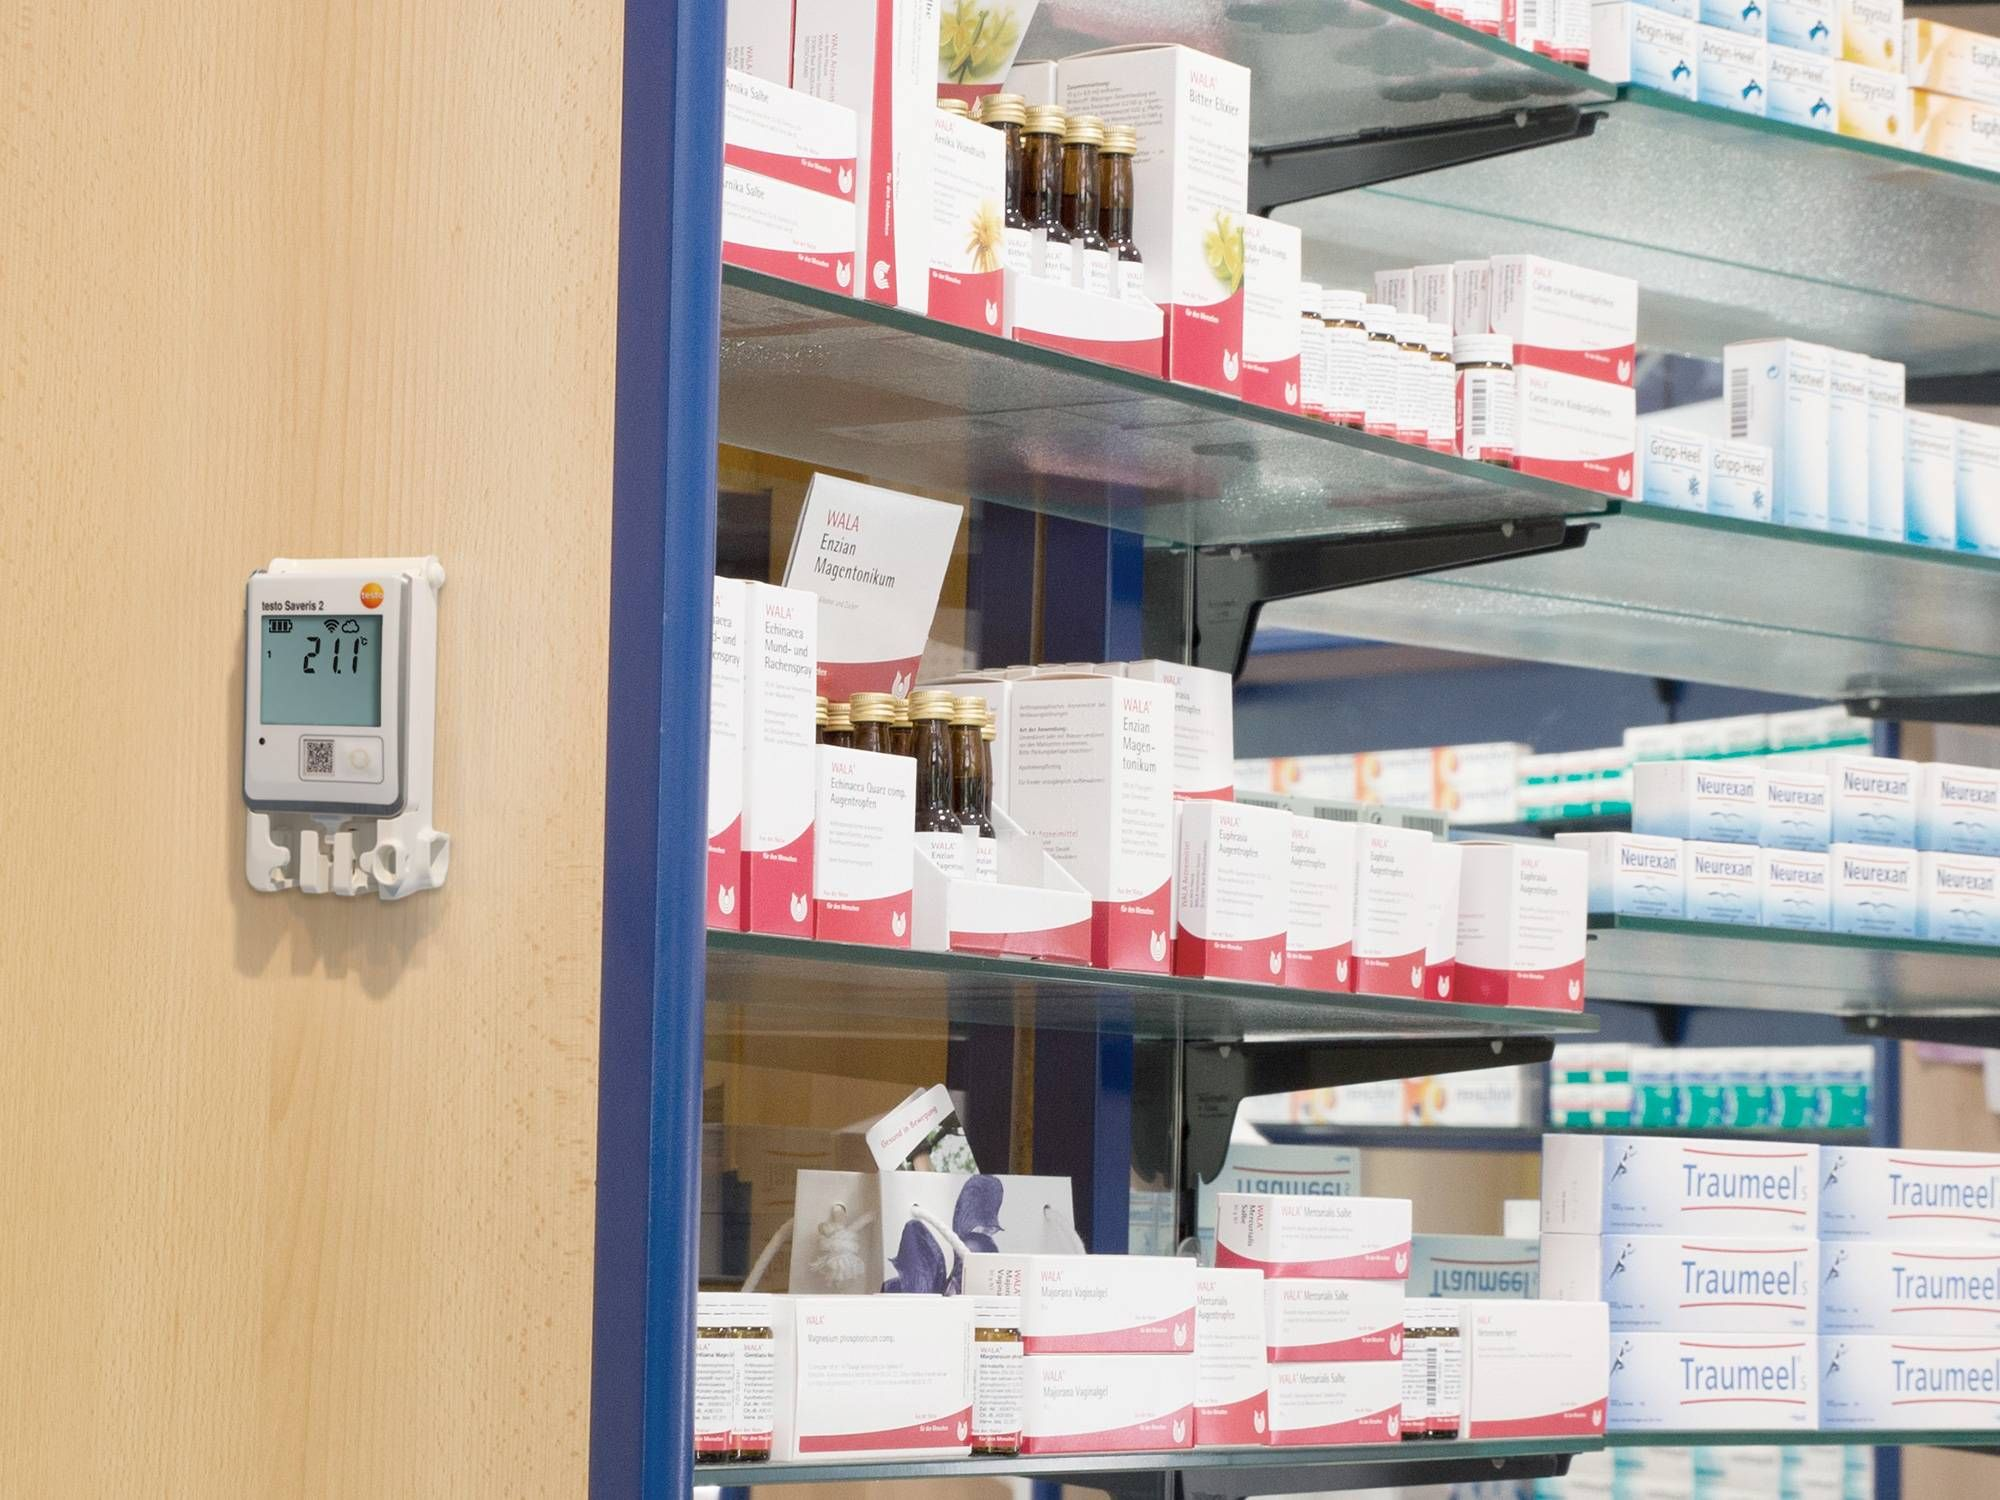 Data logger for humidity measurement in pharmacies